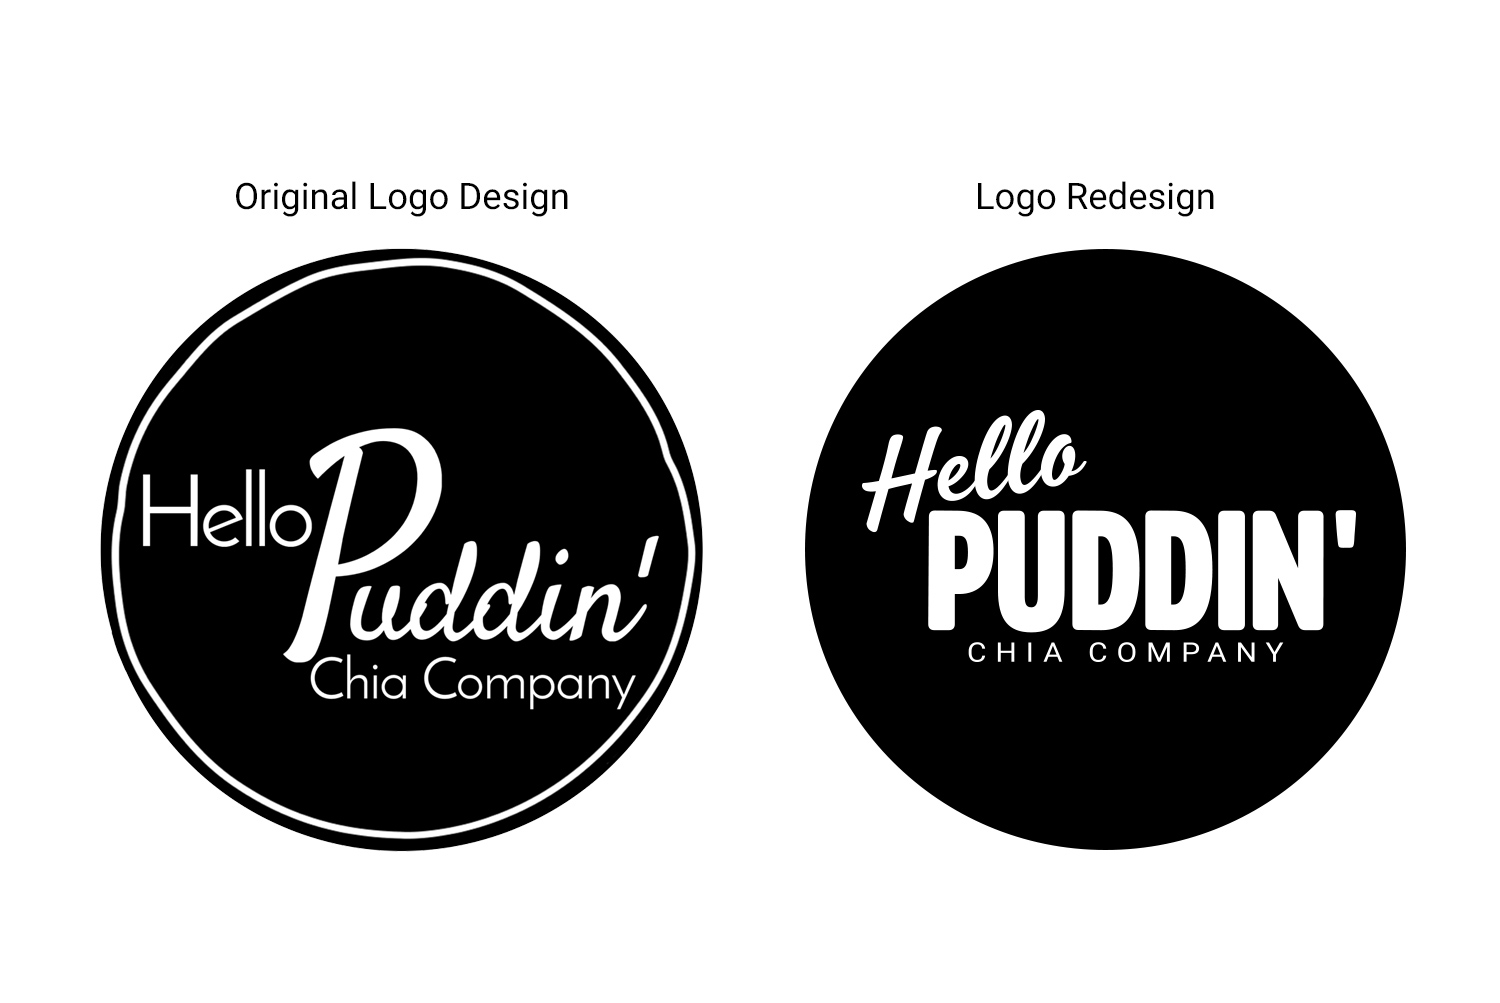 I was asked to redesign my client's logo. The logo was based on one she created.